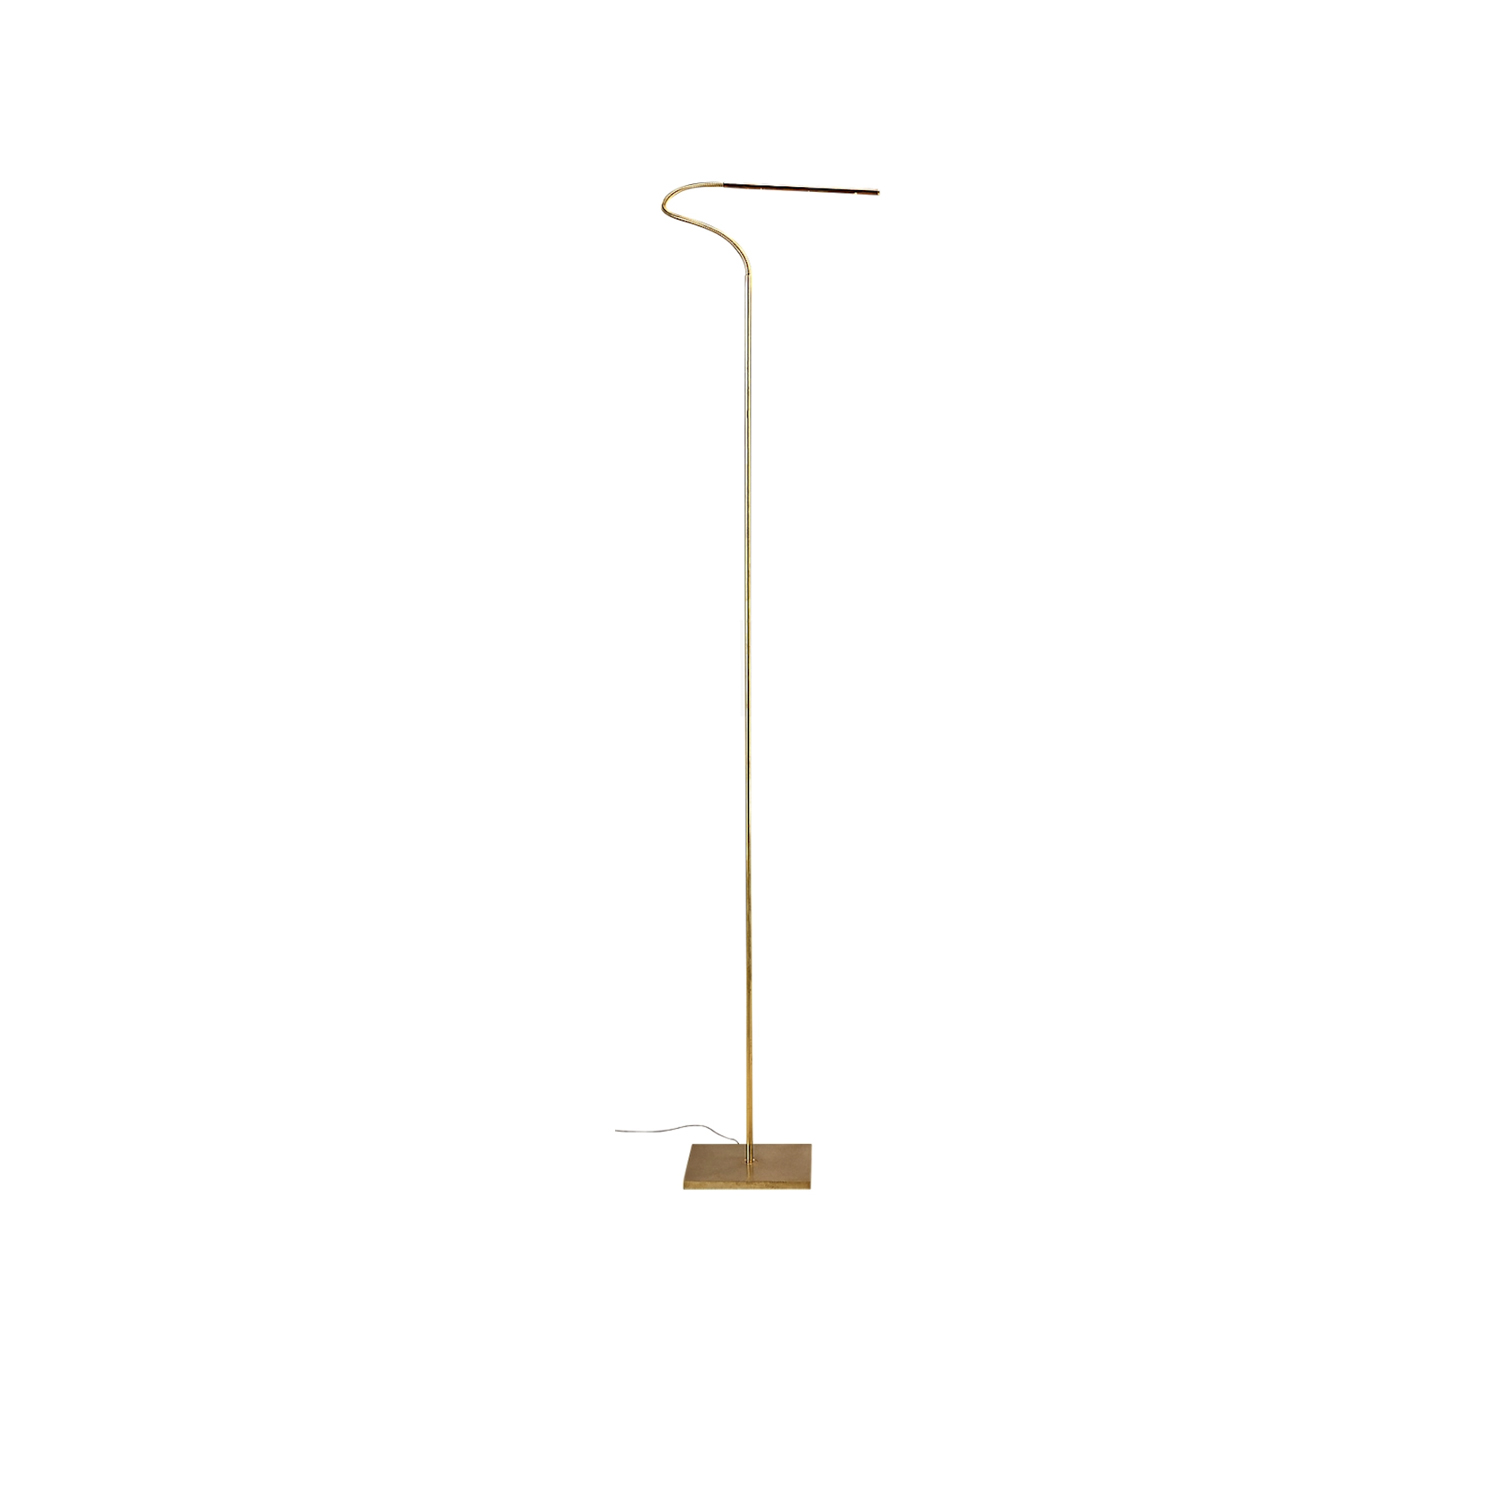 Lola F Floor Lamp - Lola is discreet and practical. Its inconspicuous presence places the emphasis on light, directing it exactly where needed. Hand crafted entirely in brass, it is available as a floor or table lamp. With minimal design, Lola is the essence of light. | Matter of Stuff